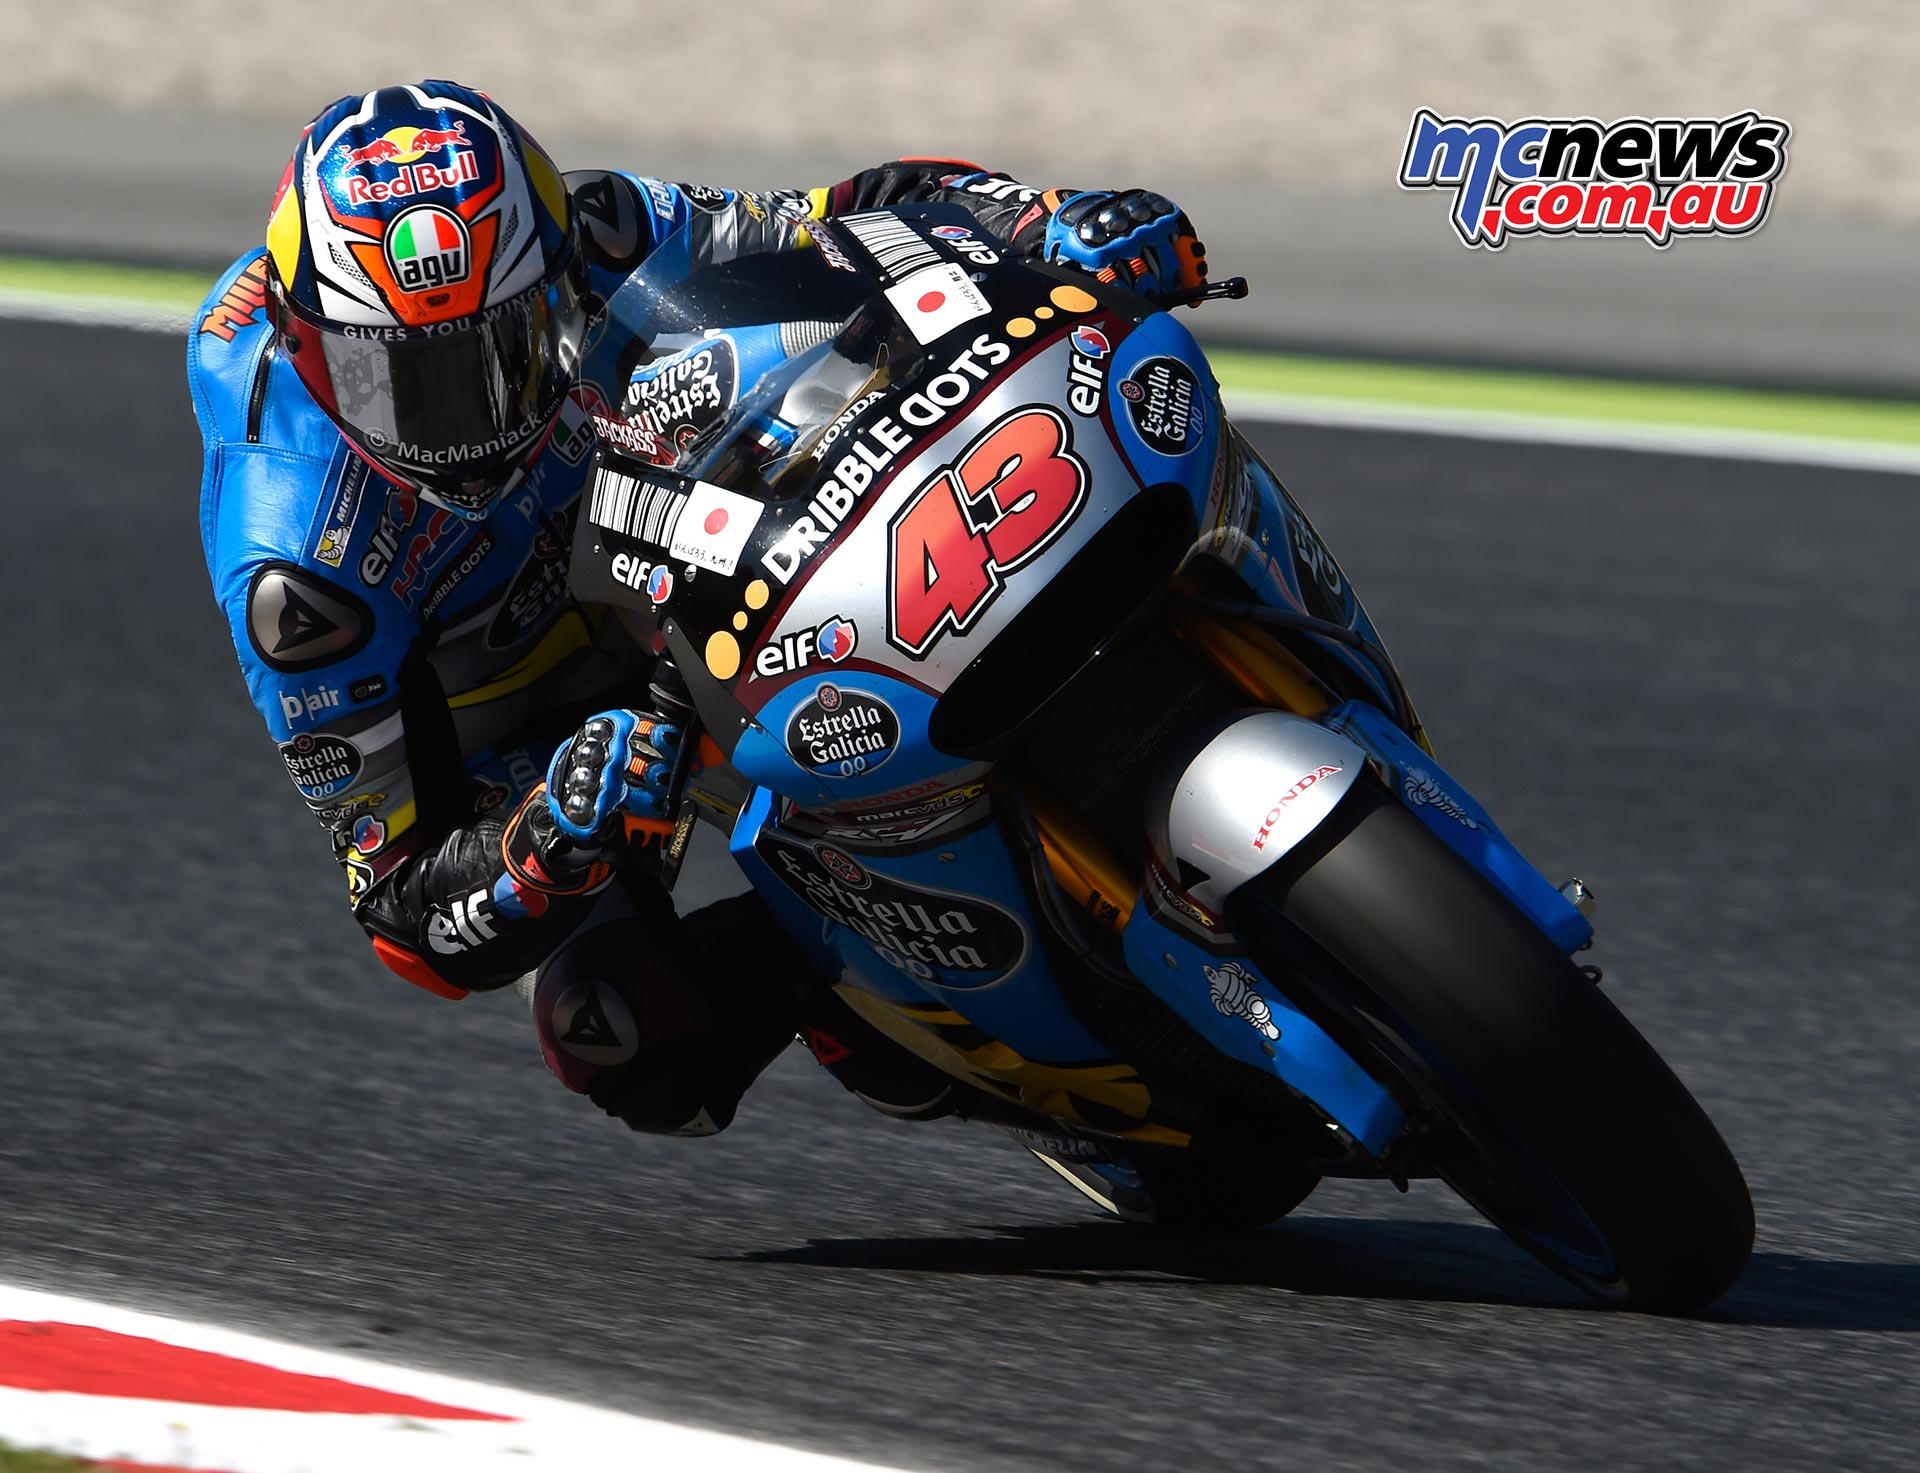 Miller down twice on day one at Catalunya | MCNews com au